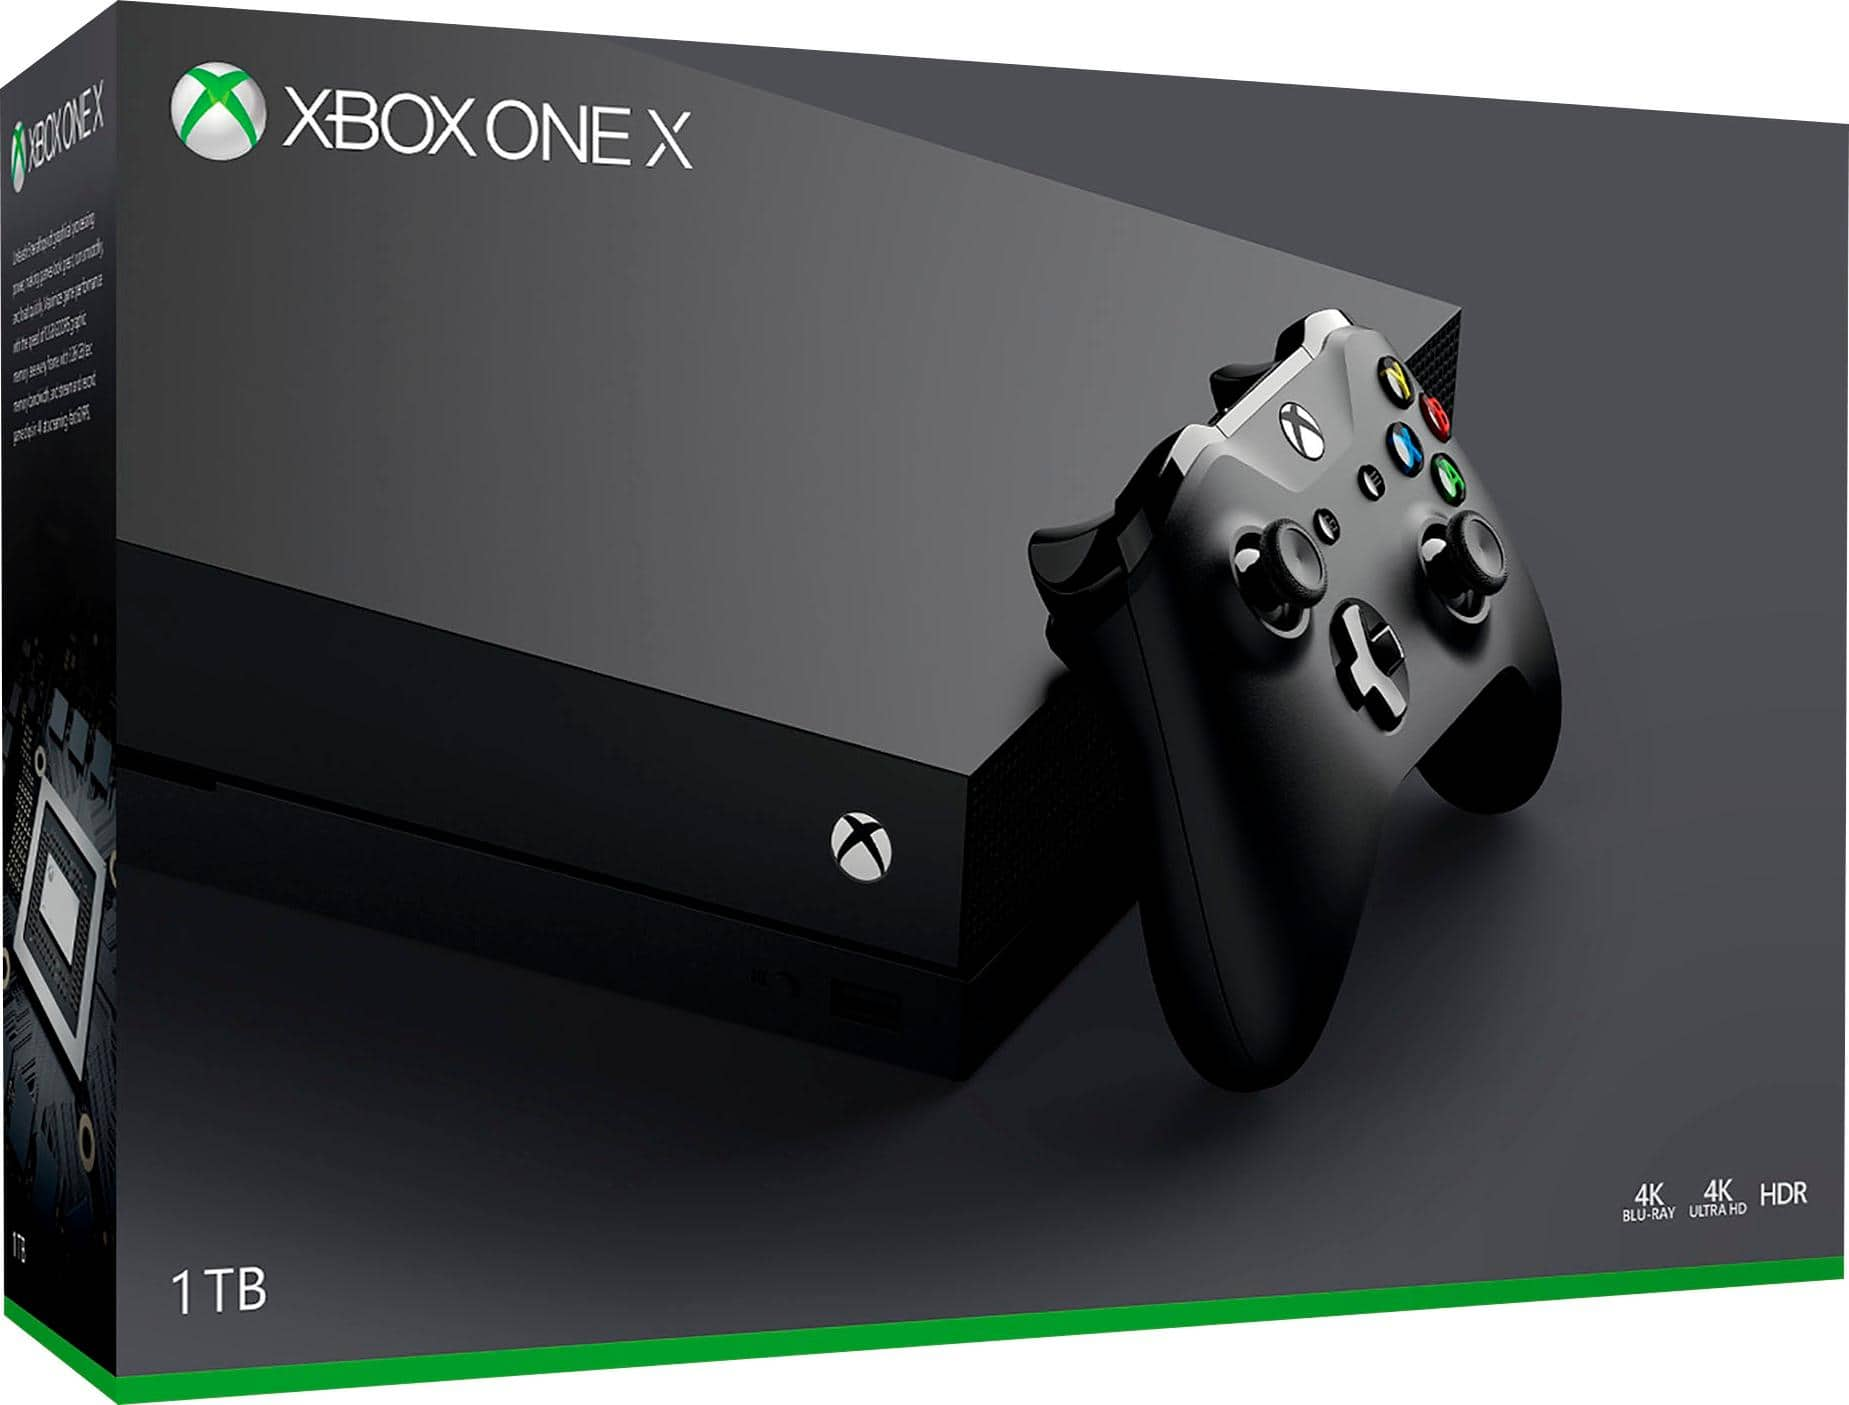 Starting on 2/20:$500 for Xbox one X + $50 gift card + Free